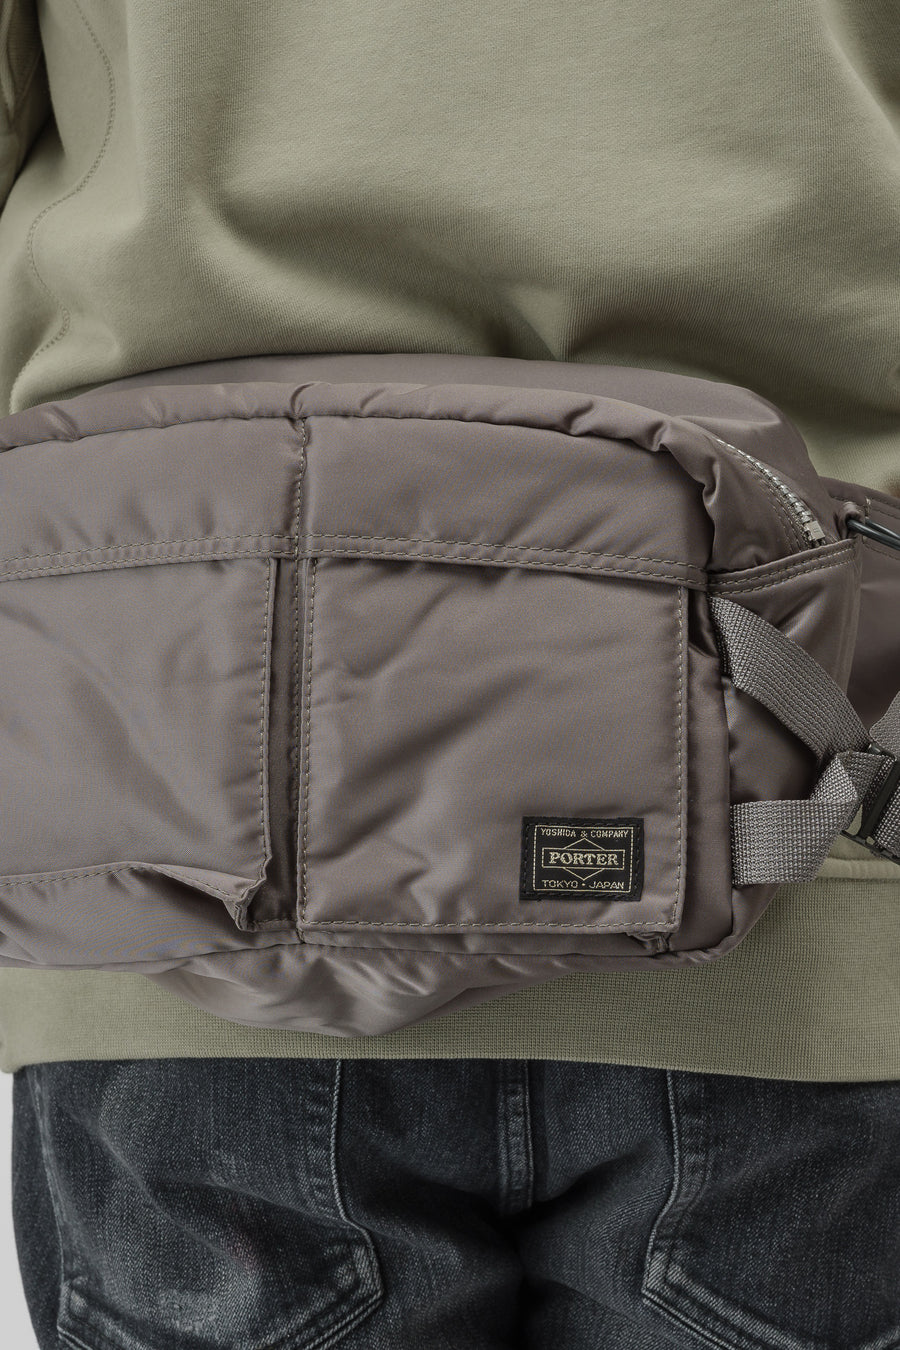 Porter TANKER 2Way Waist Bag in Military Green - Notre